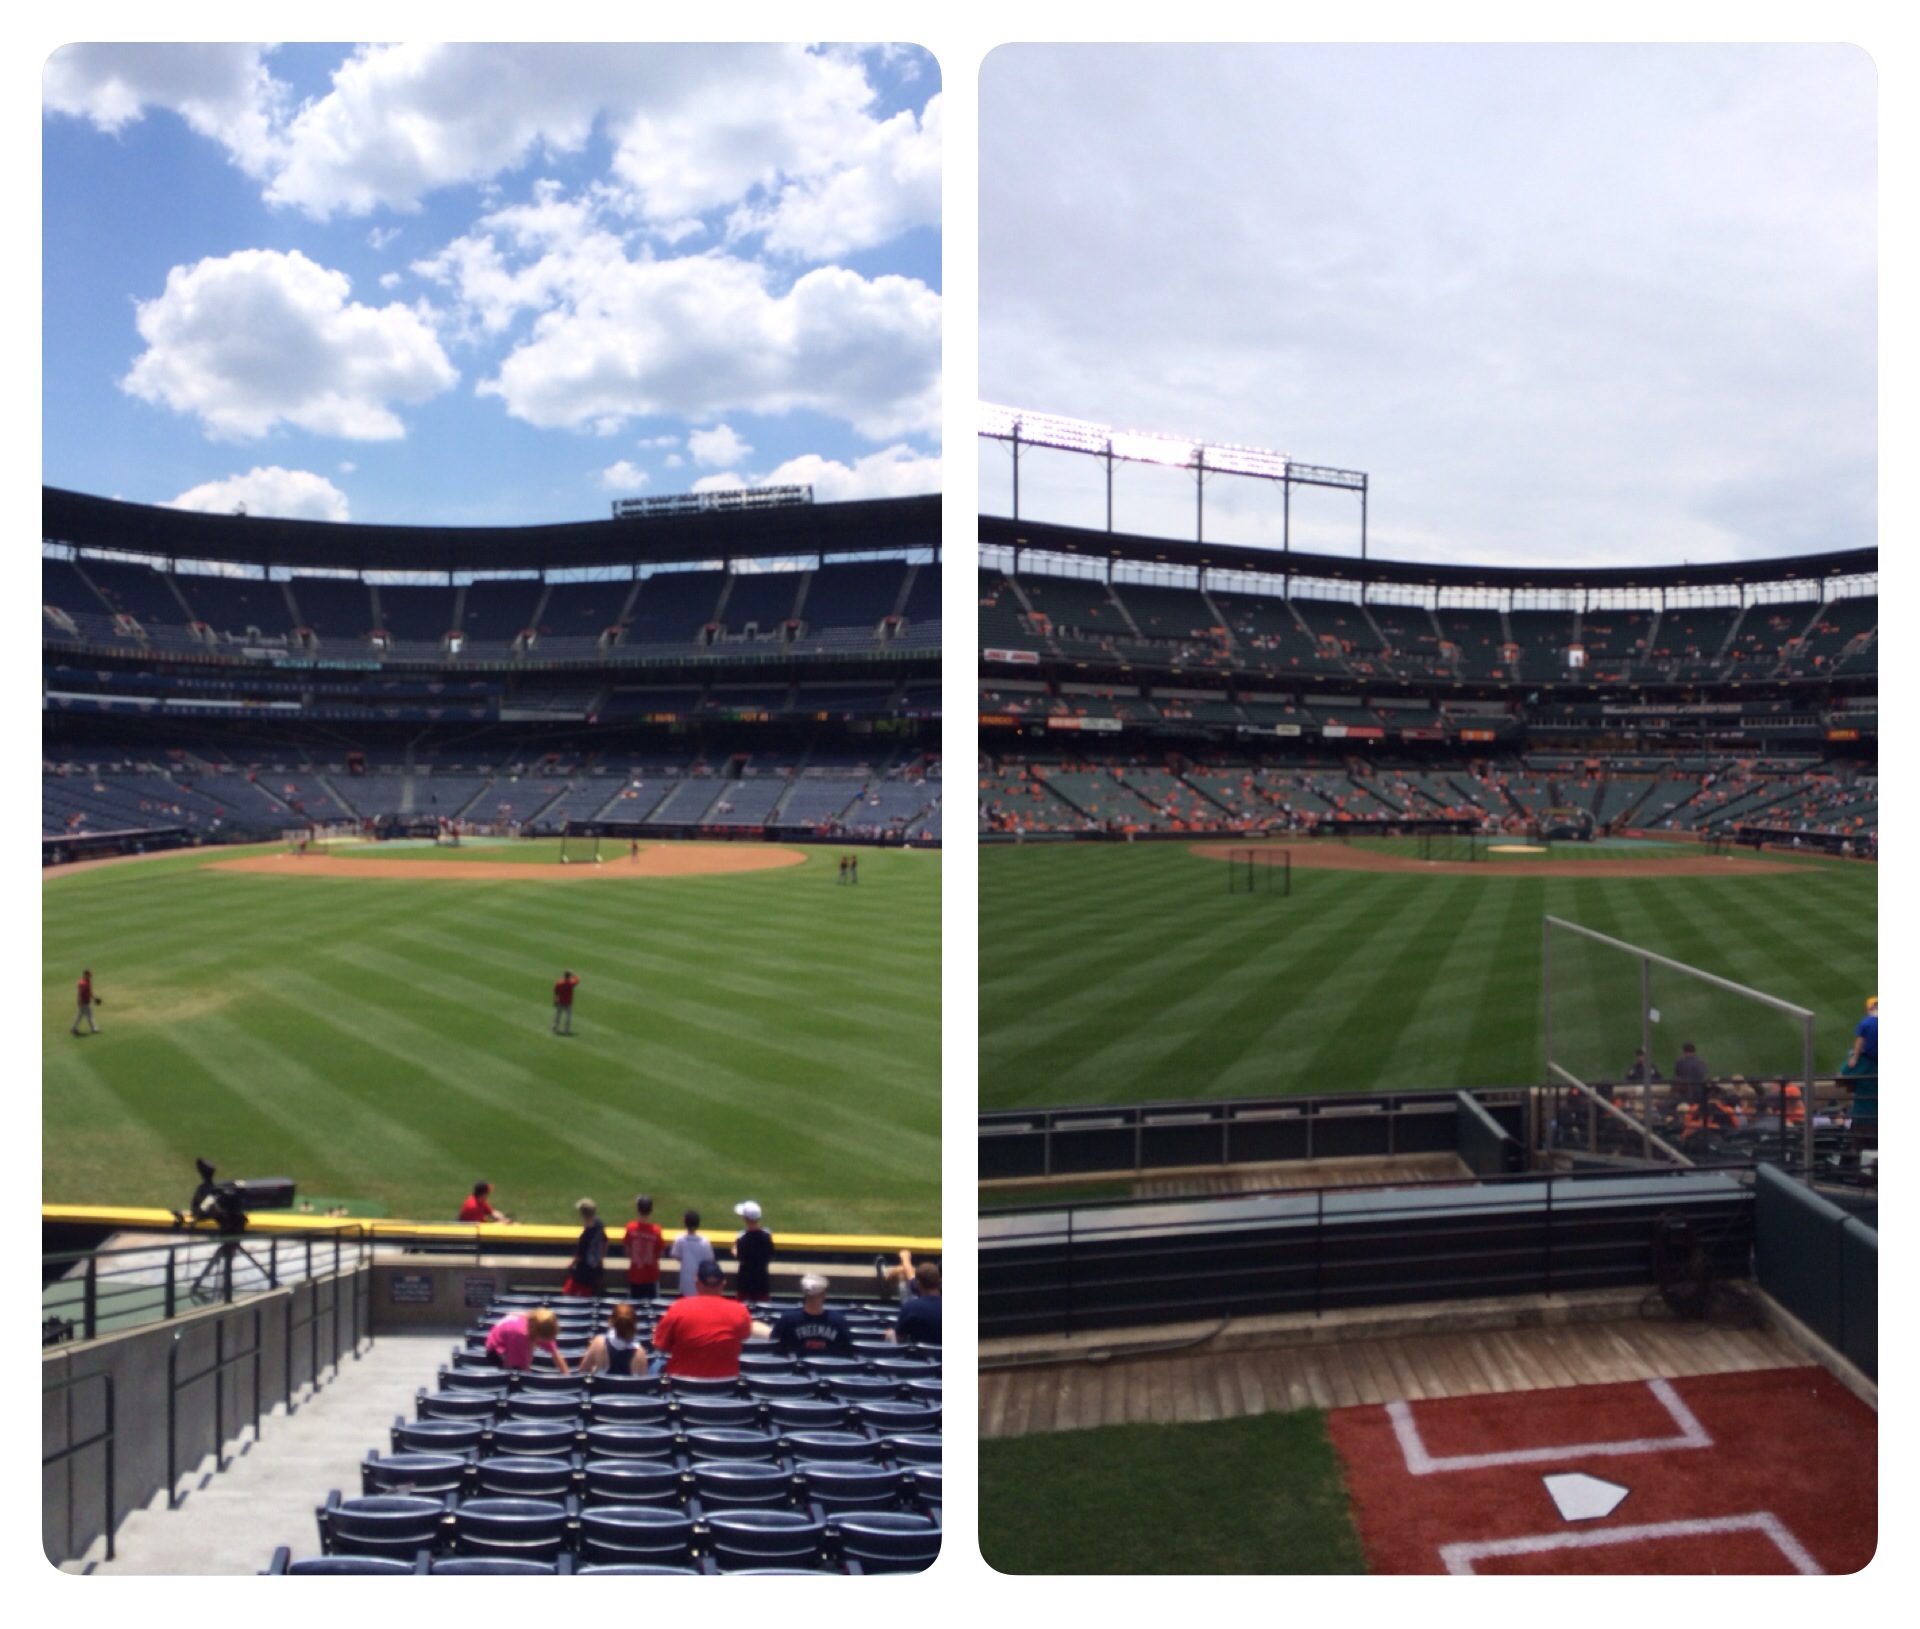 Pictures I took from both Turner Field and Camden Yards. Both good ballparks.